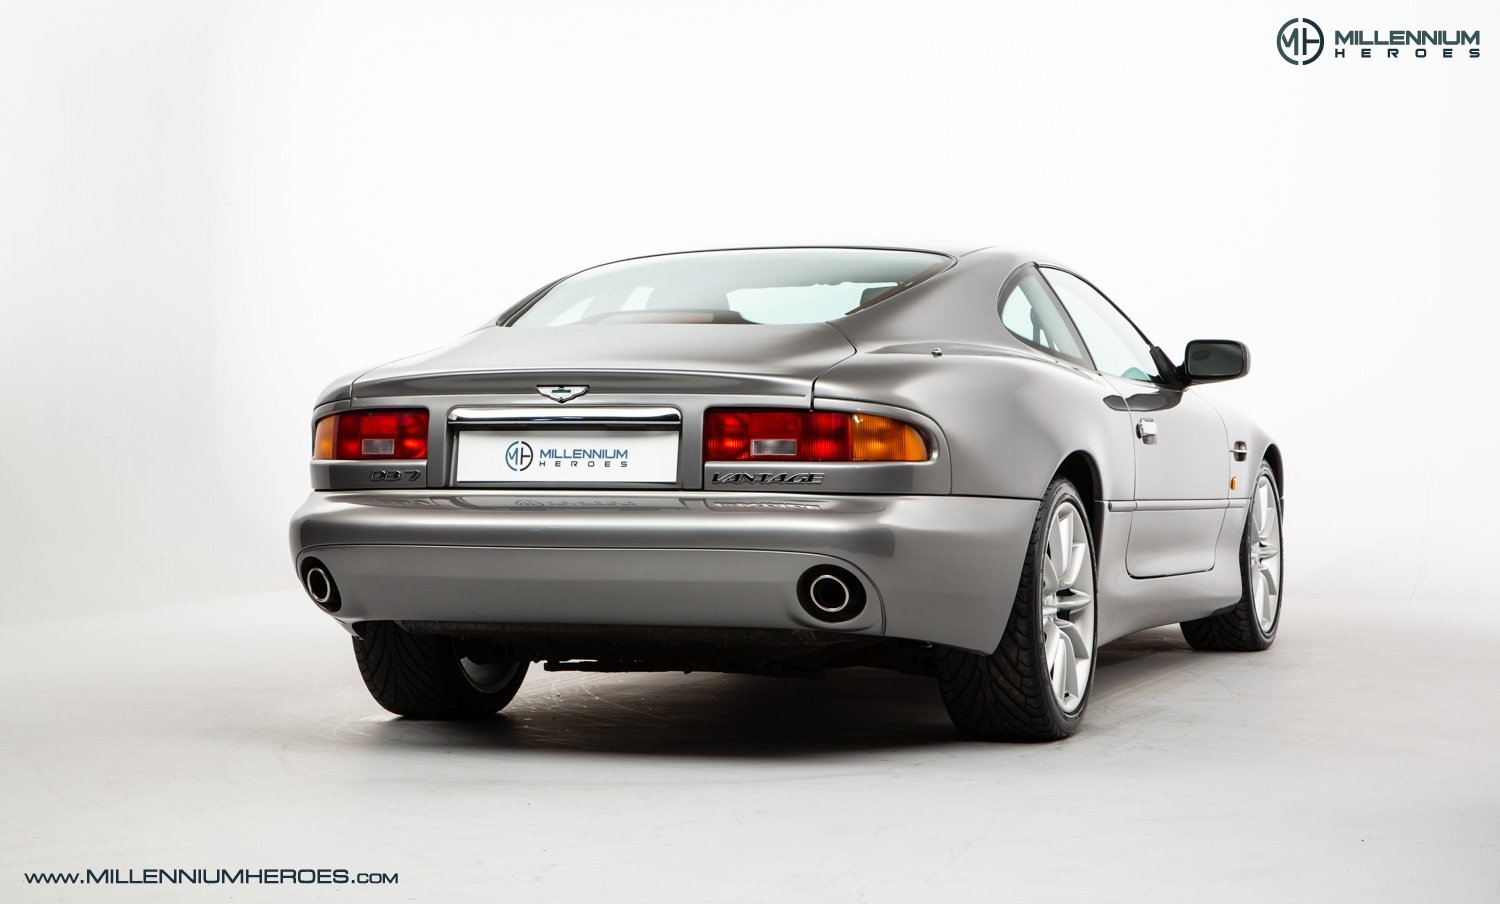 2000 ASTON MARTIN DB7 5.9 VANTAGE  For Sale (picture 10 of 24)